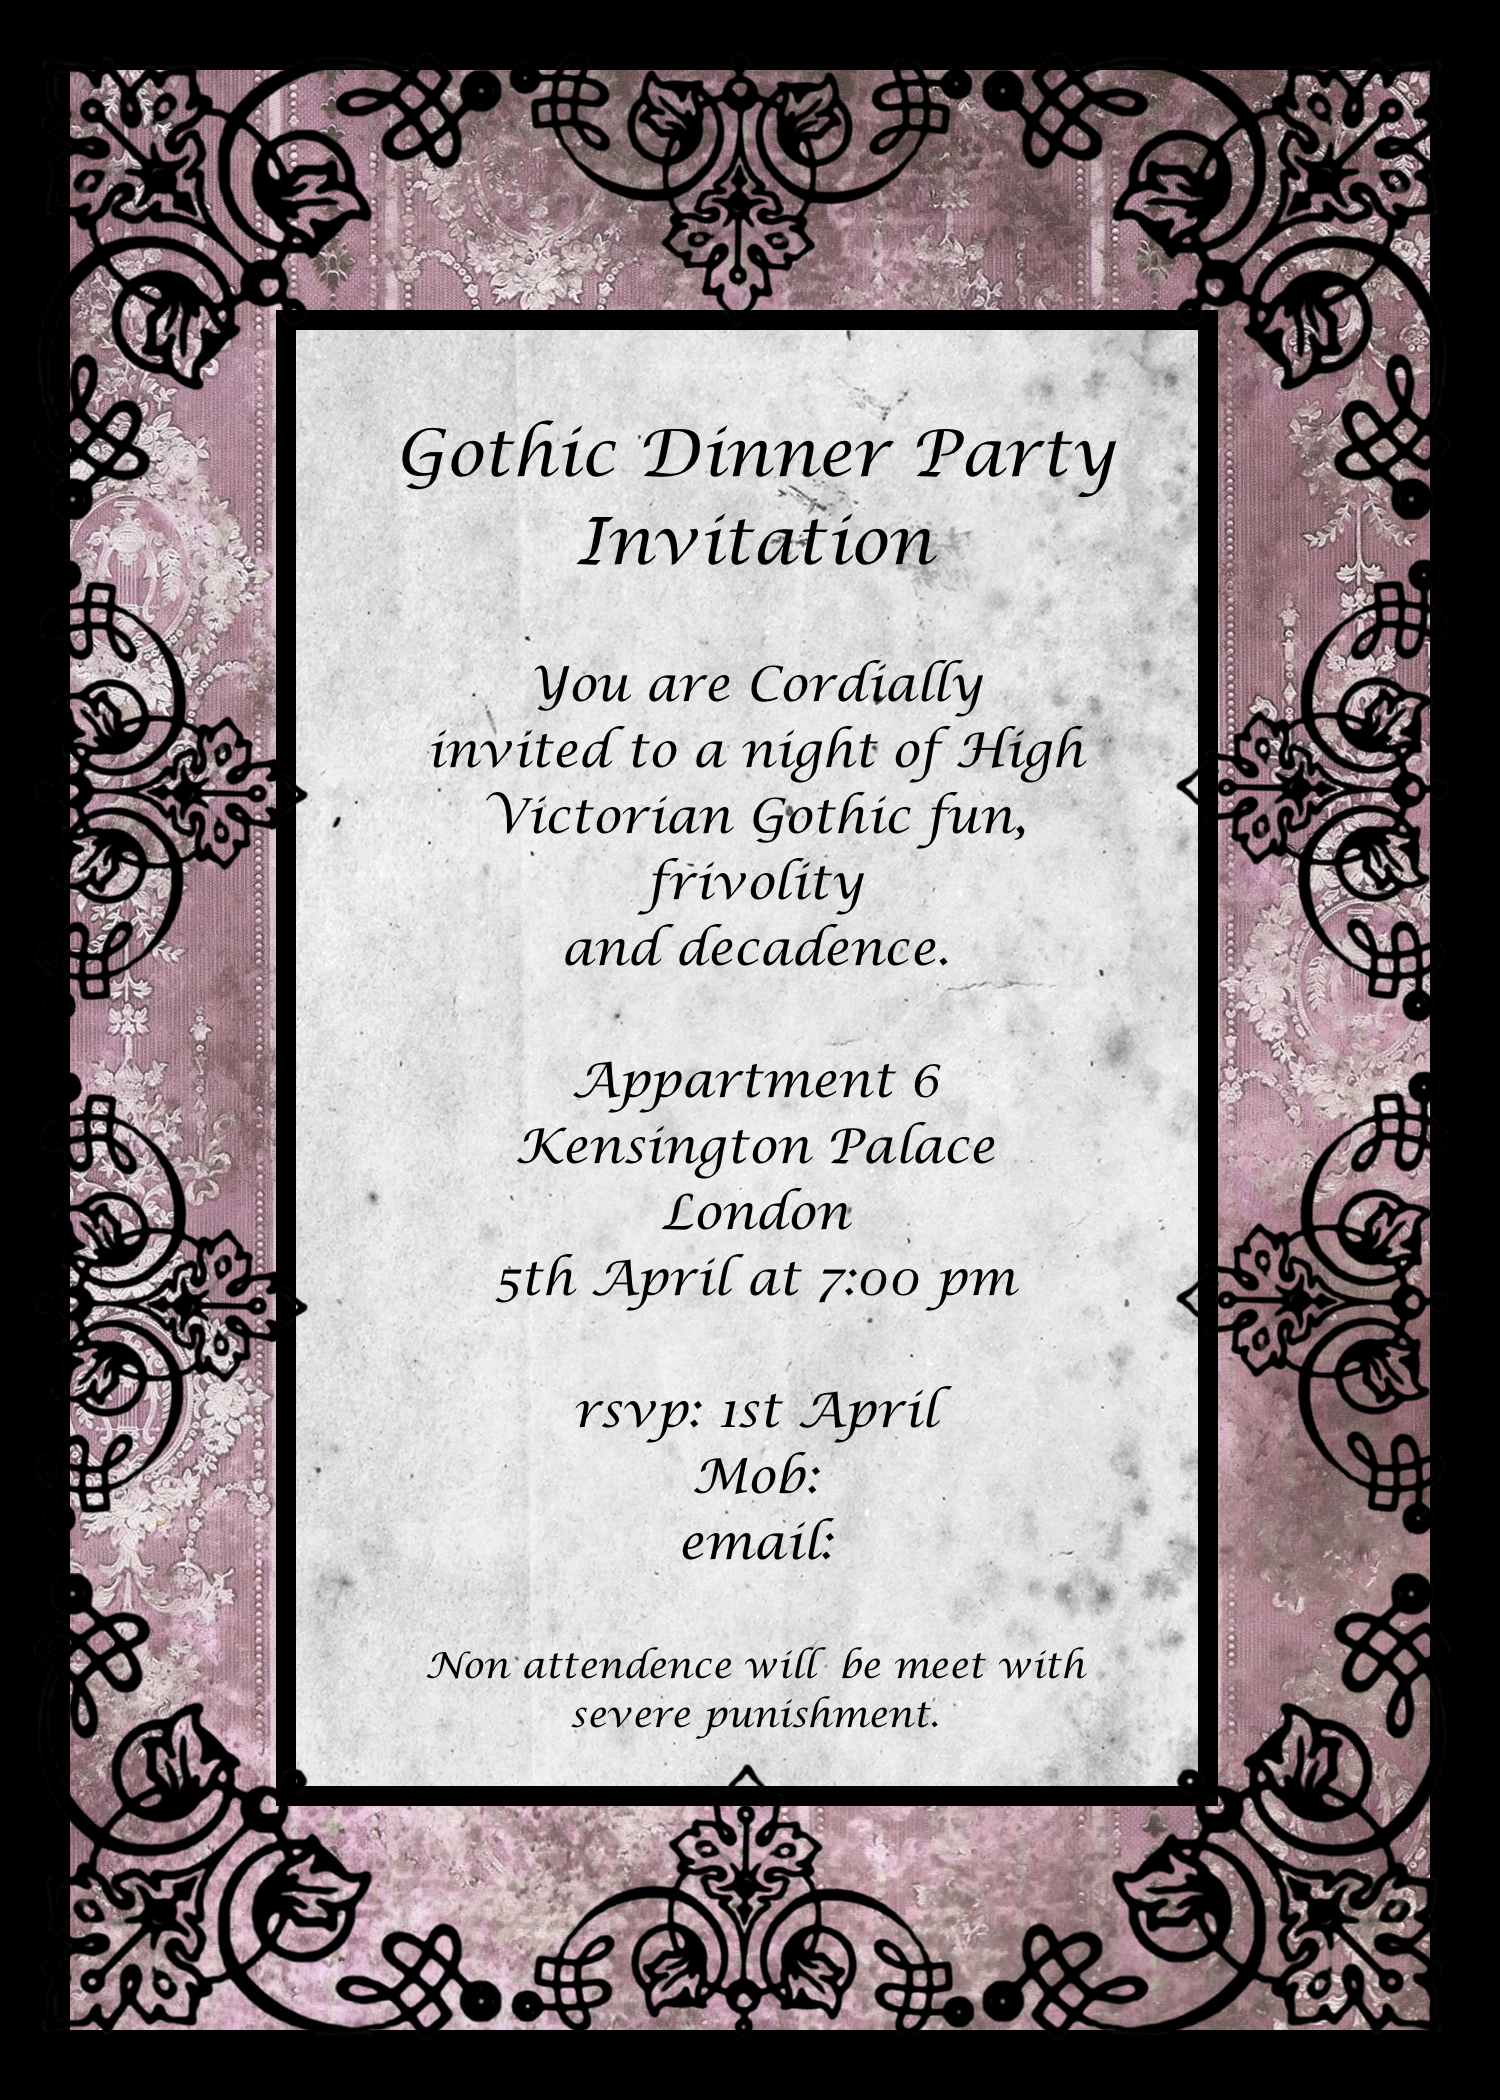 Gothic Dinner Party - Invitation